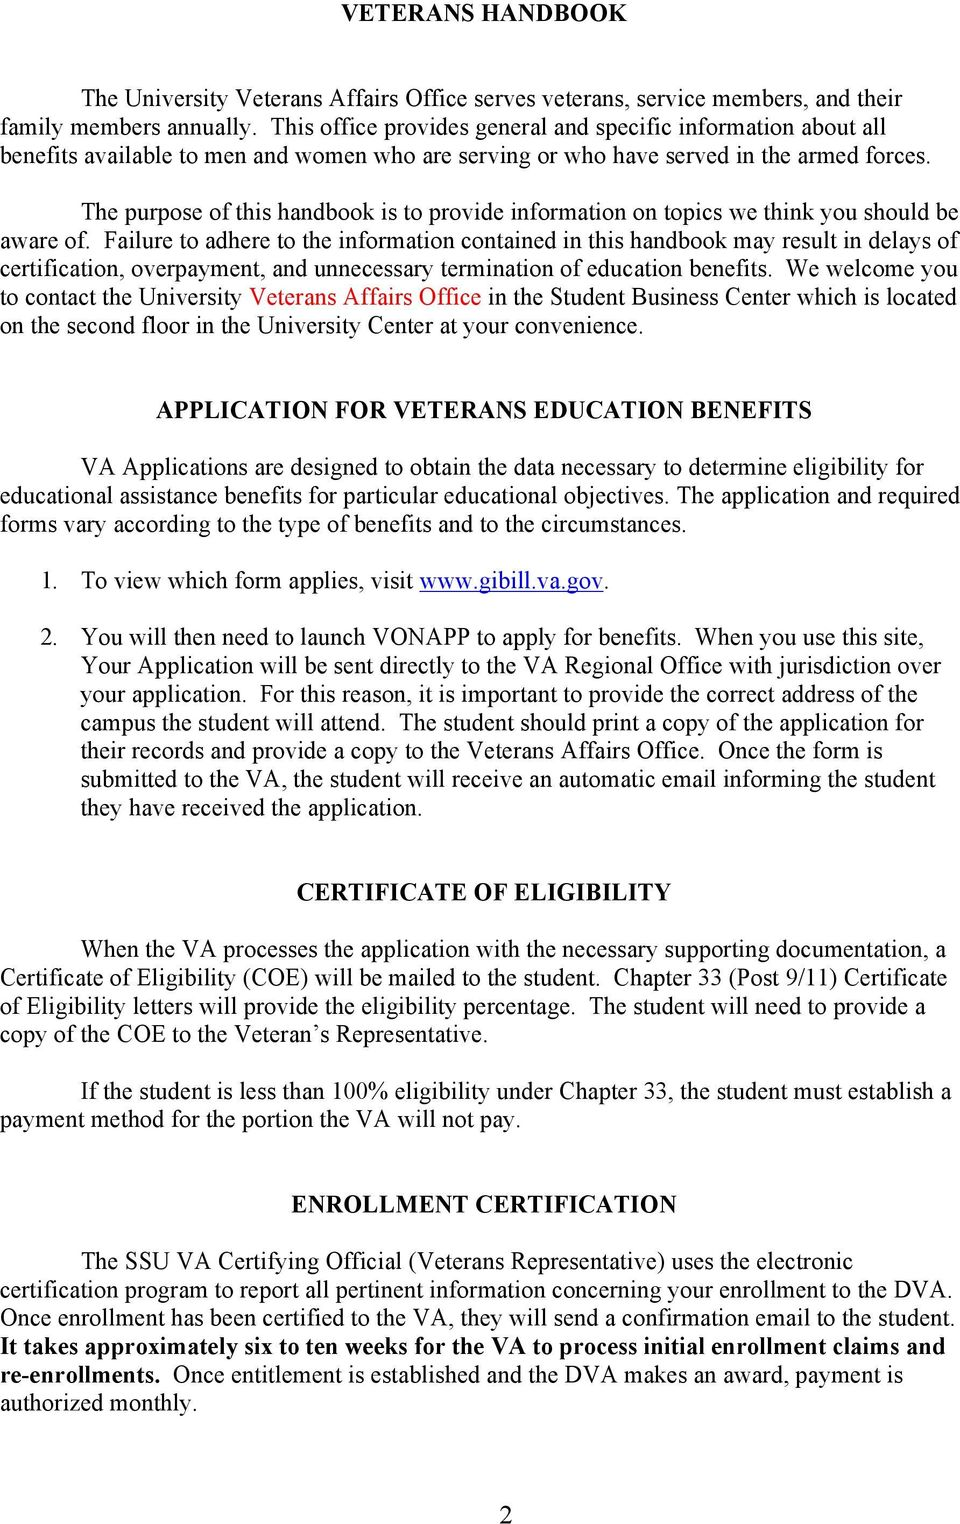 Application For Veterans Education Benefits 2 Certificate Of